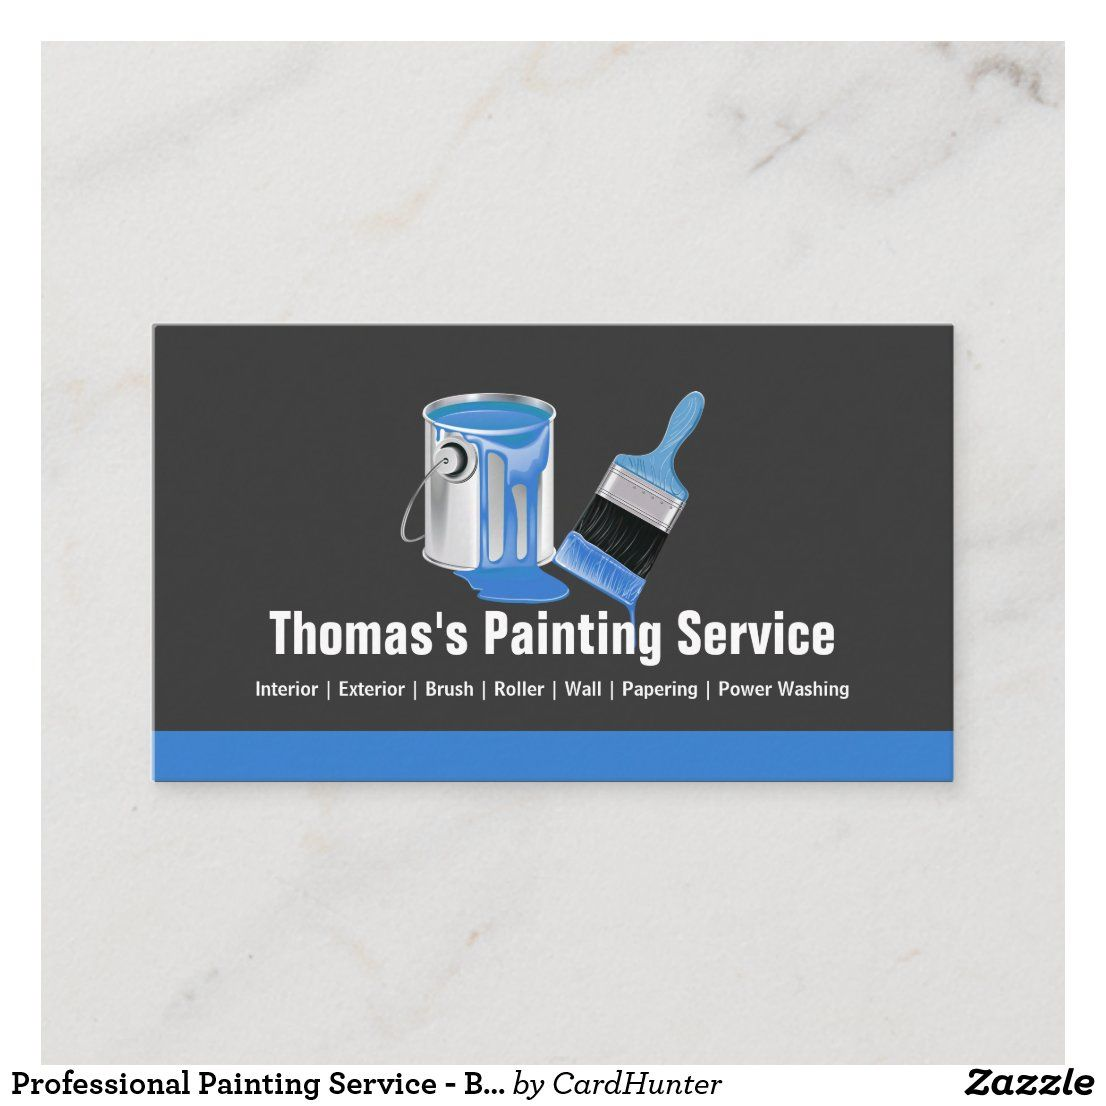 Professional Painting Service Blue Painter Brush Business Card Zazzle Com In 2021 Painter Business Card Red Business Cards Professional Paintings